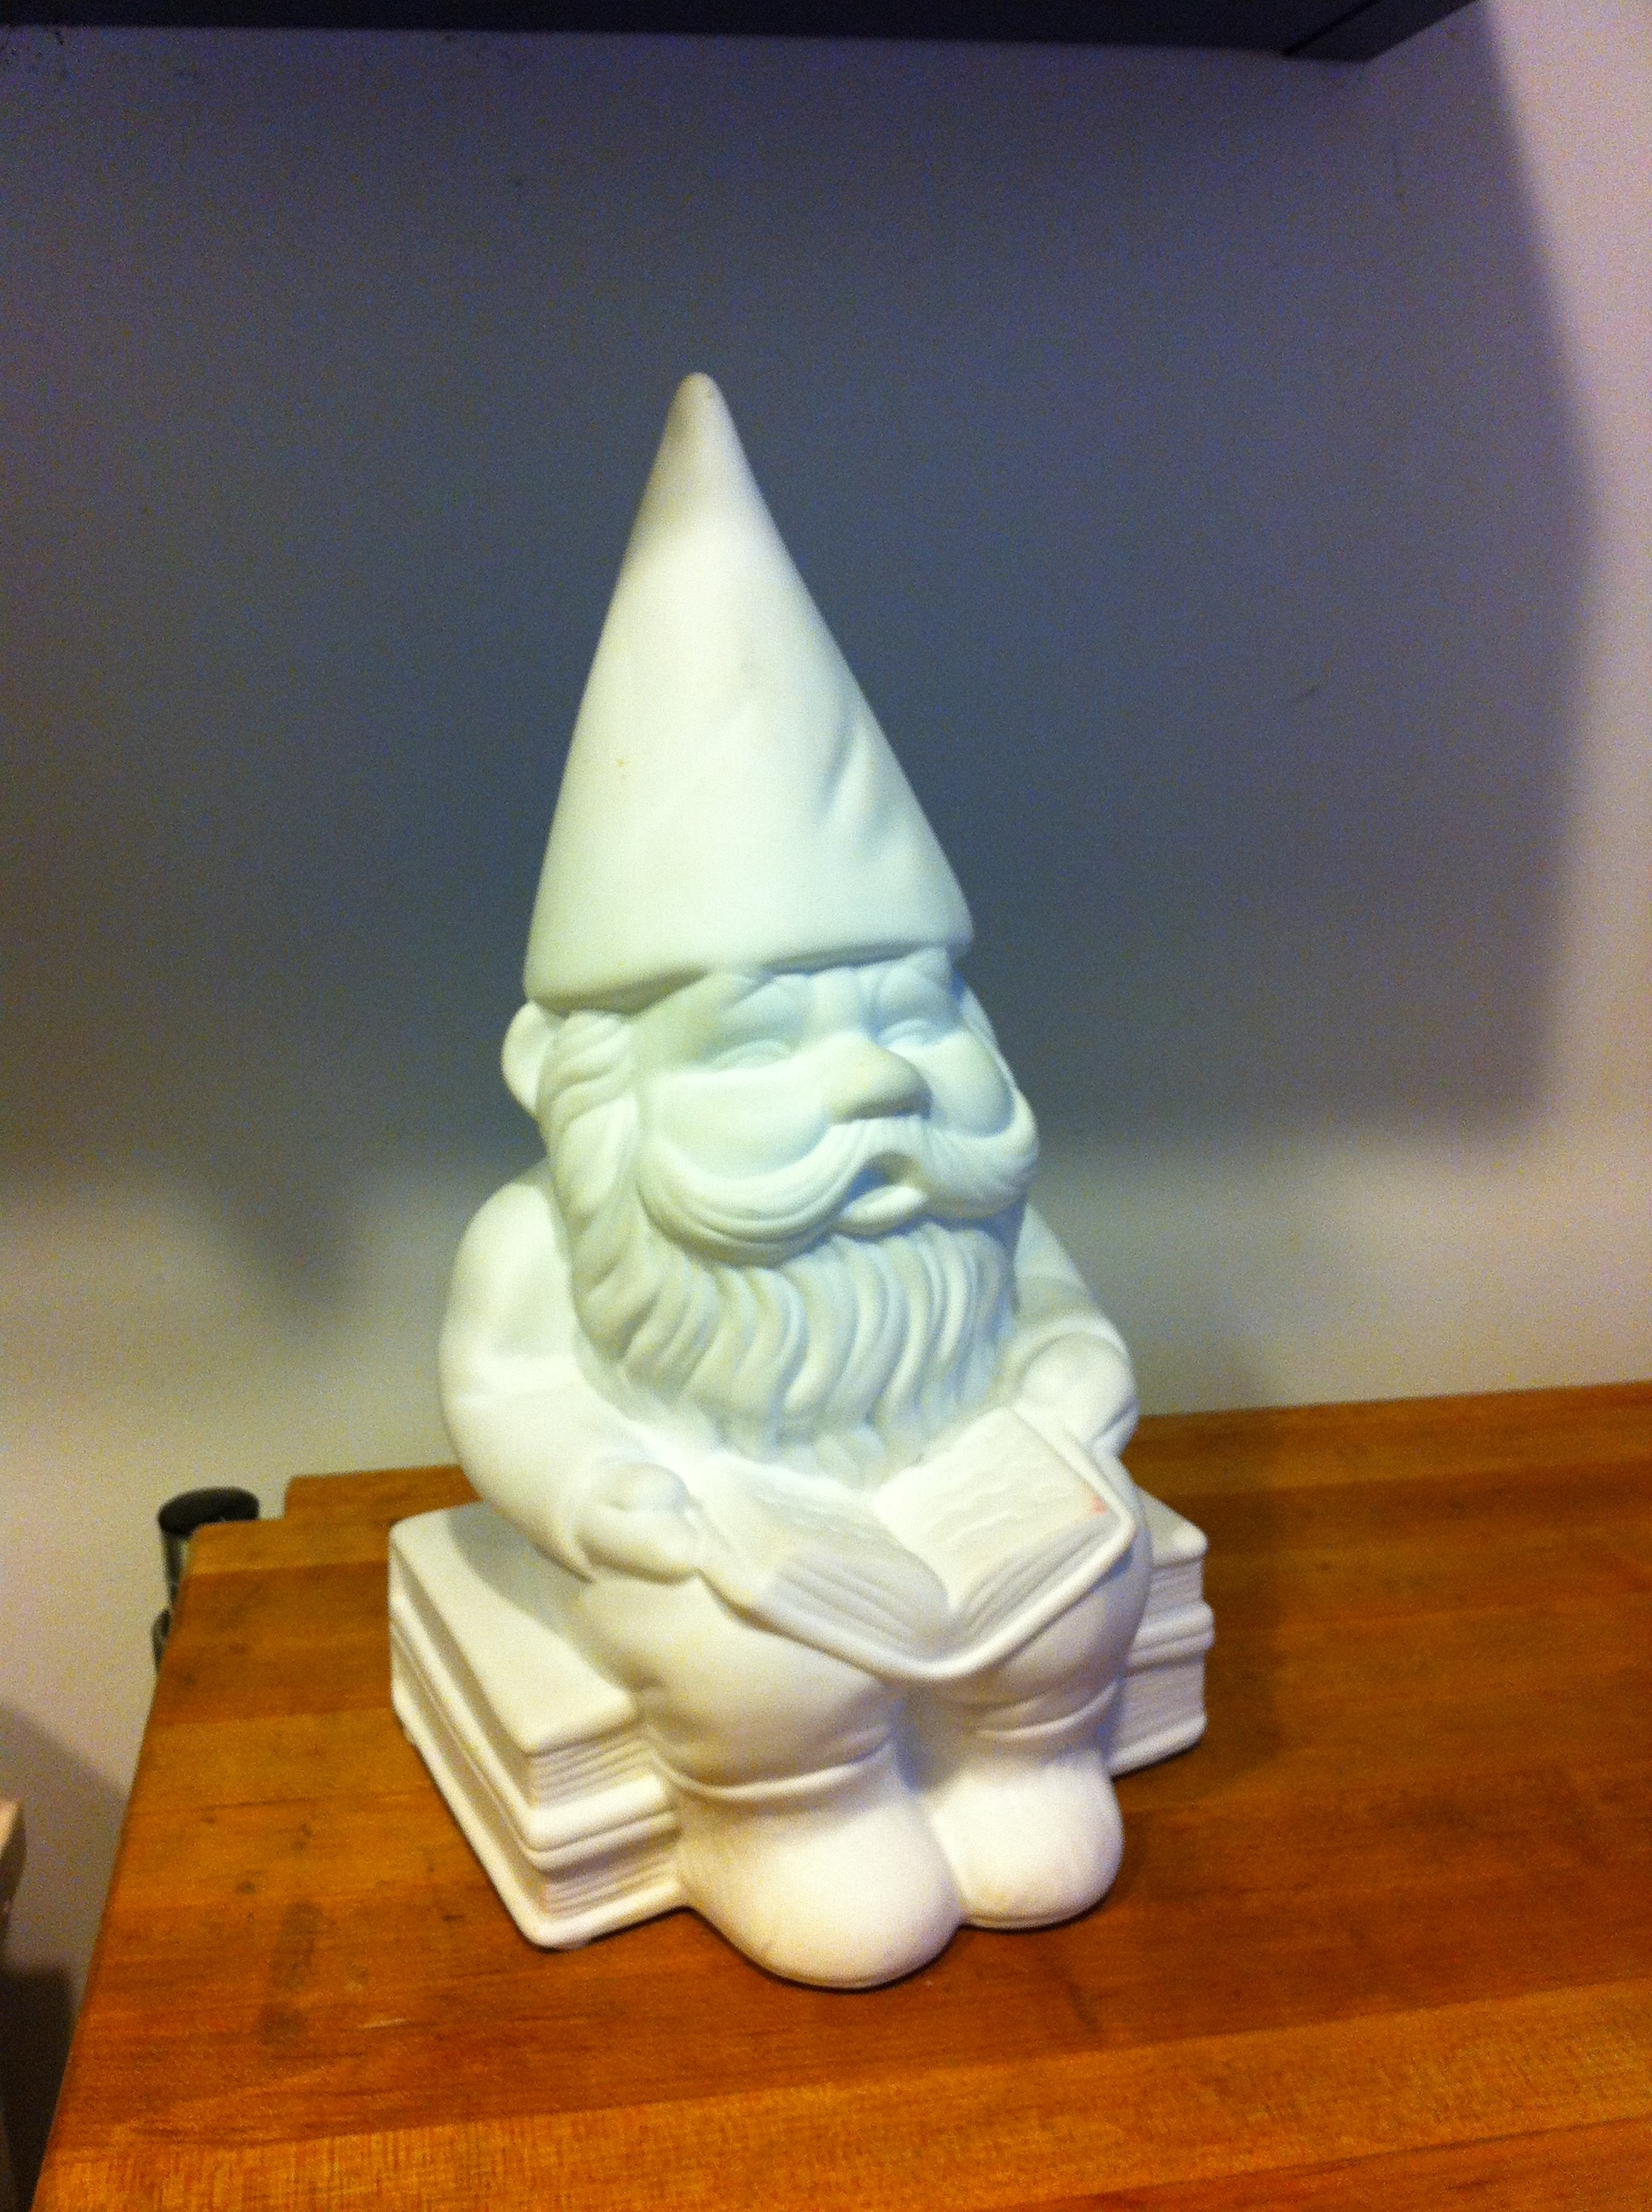 Pic of PJ Mehaffey's Good Luck Gnome of 2013